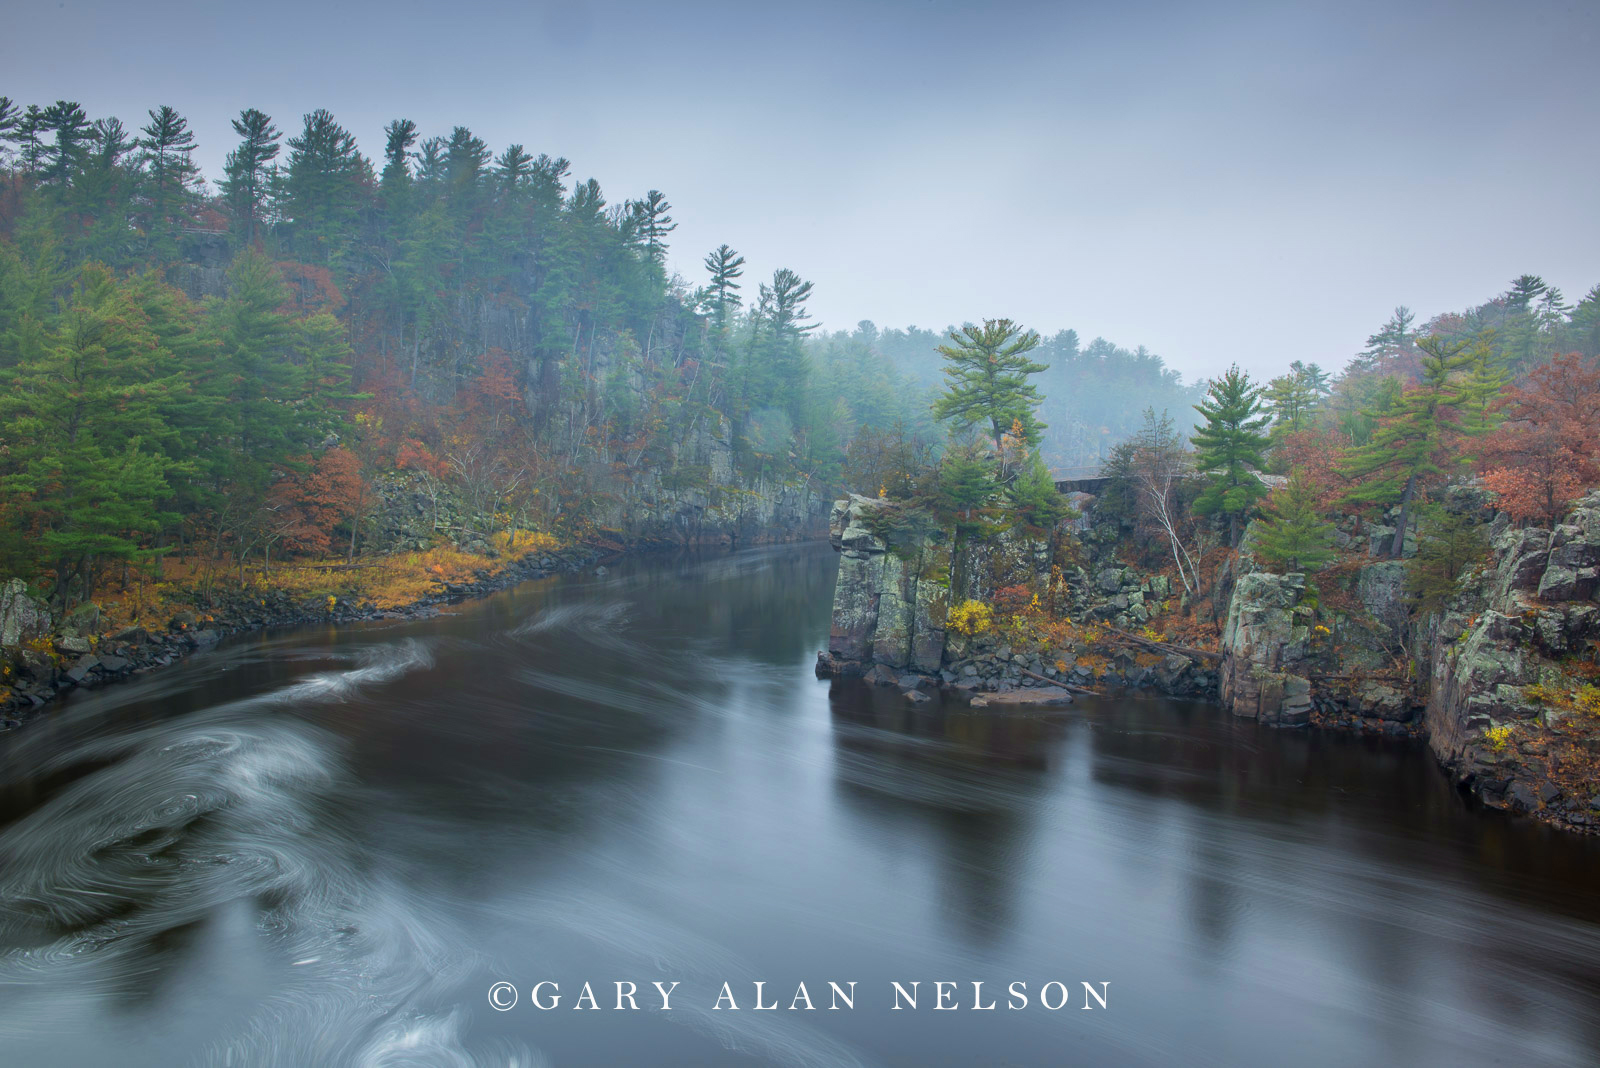 Fog along the Dalles of the St. Croix National Scenic River, Minesota/Wisconsin